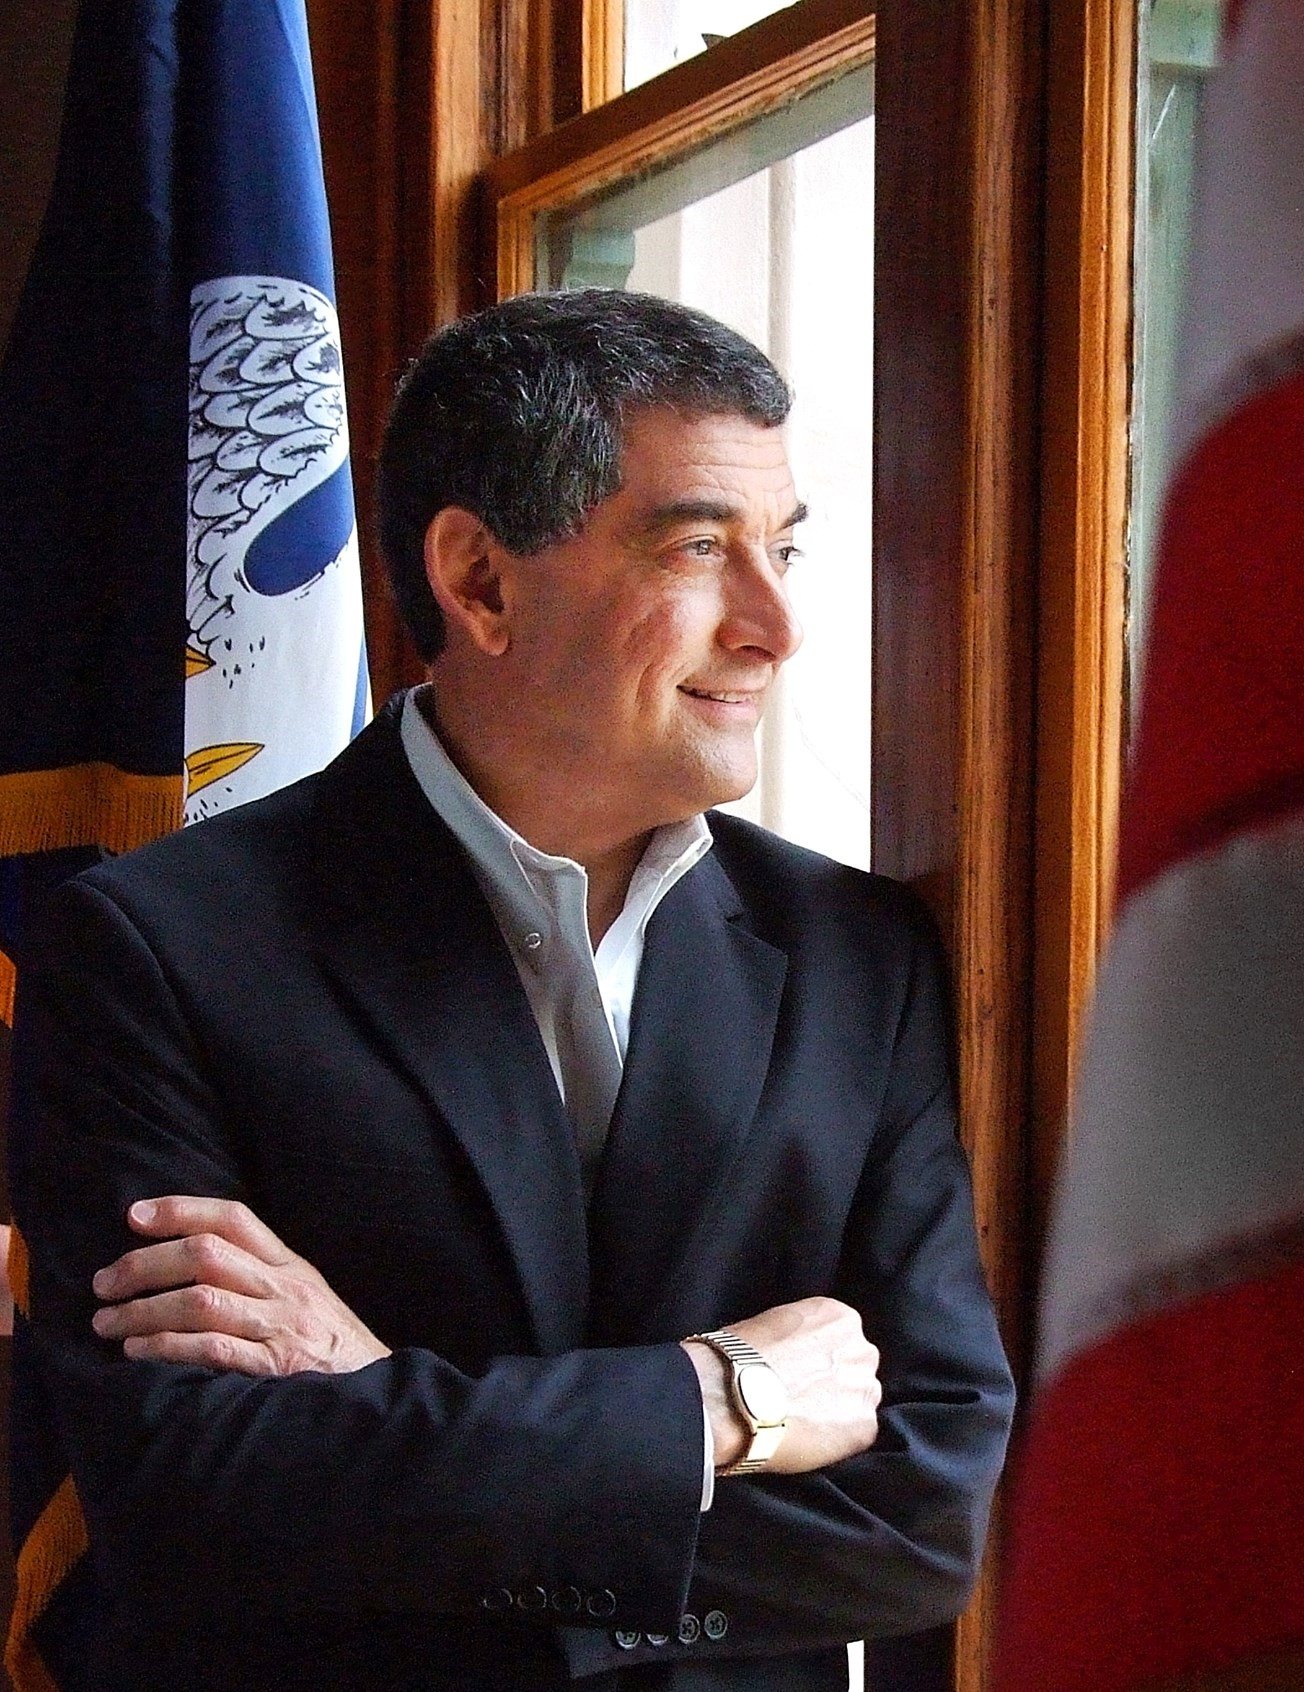 Commissioner of Administration Jay Dardenne